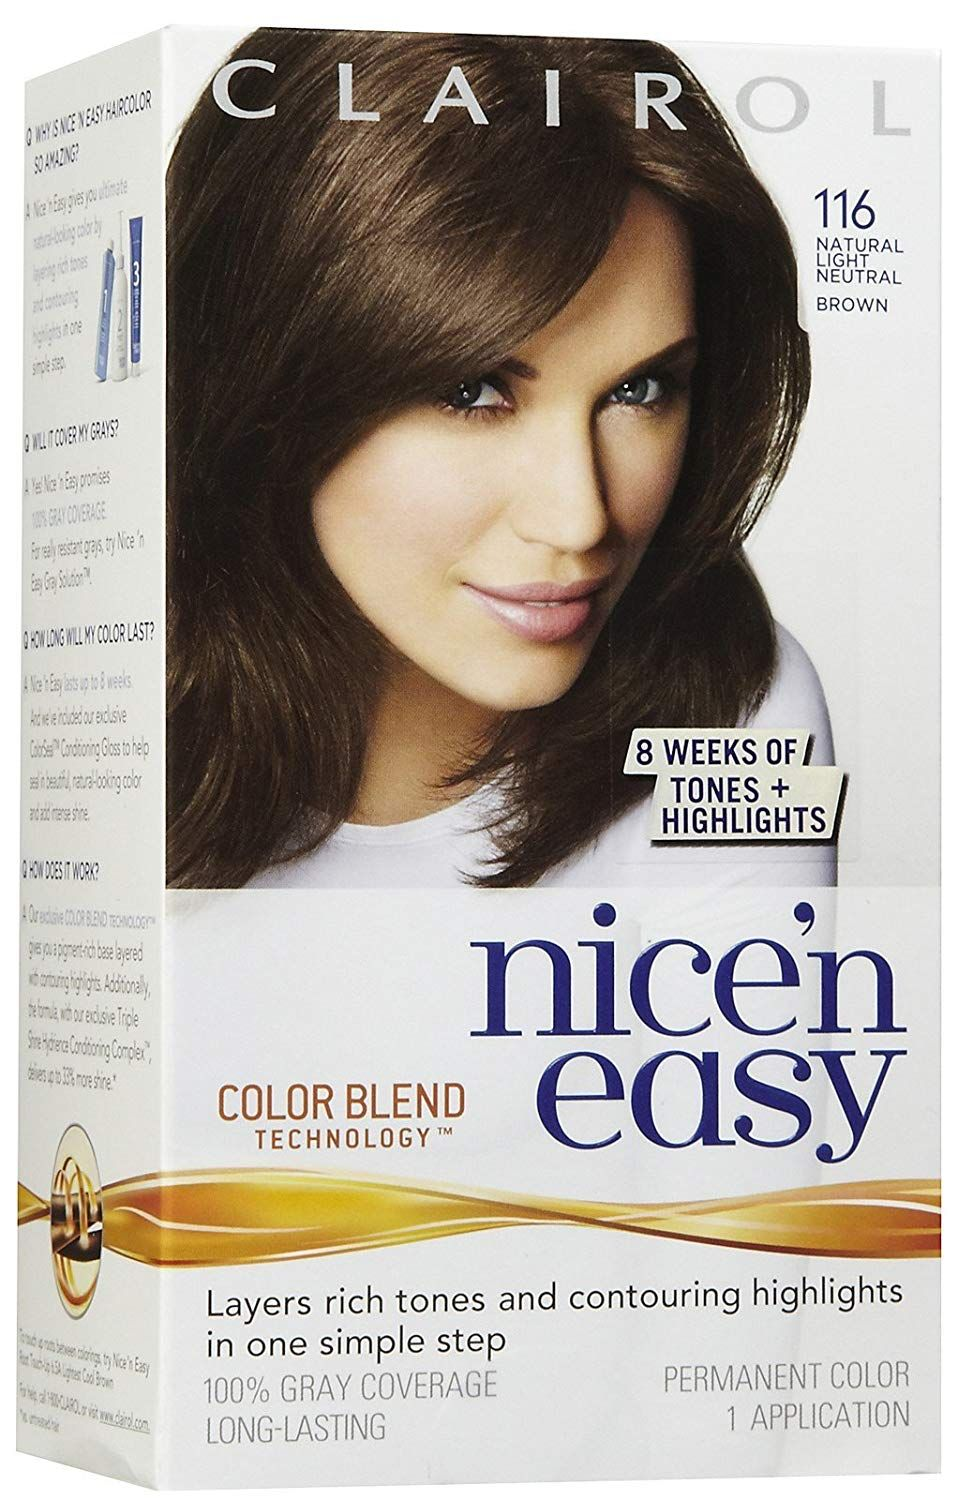 Clairol 116 Natural Light Brown